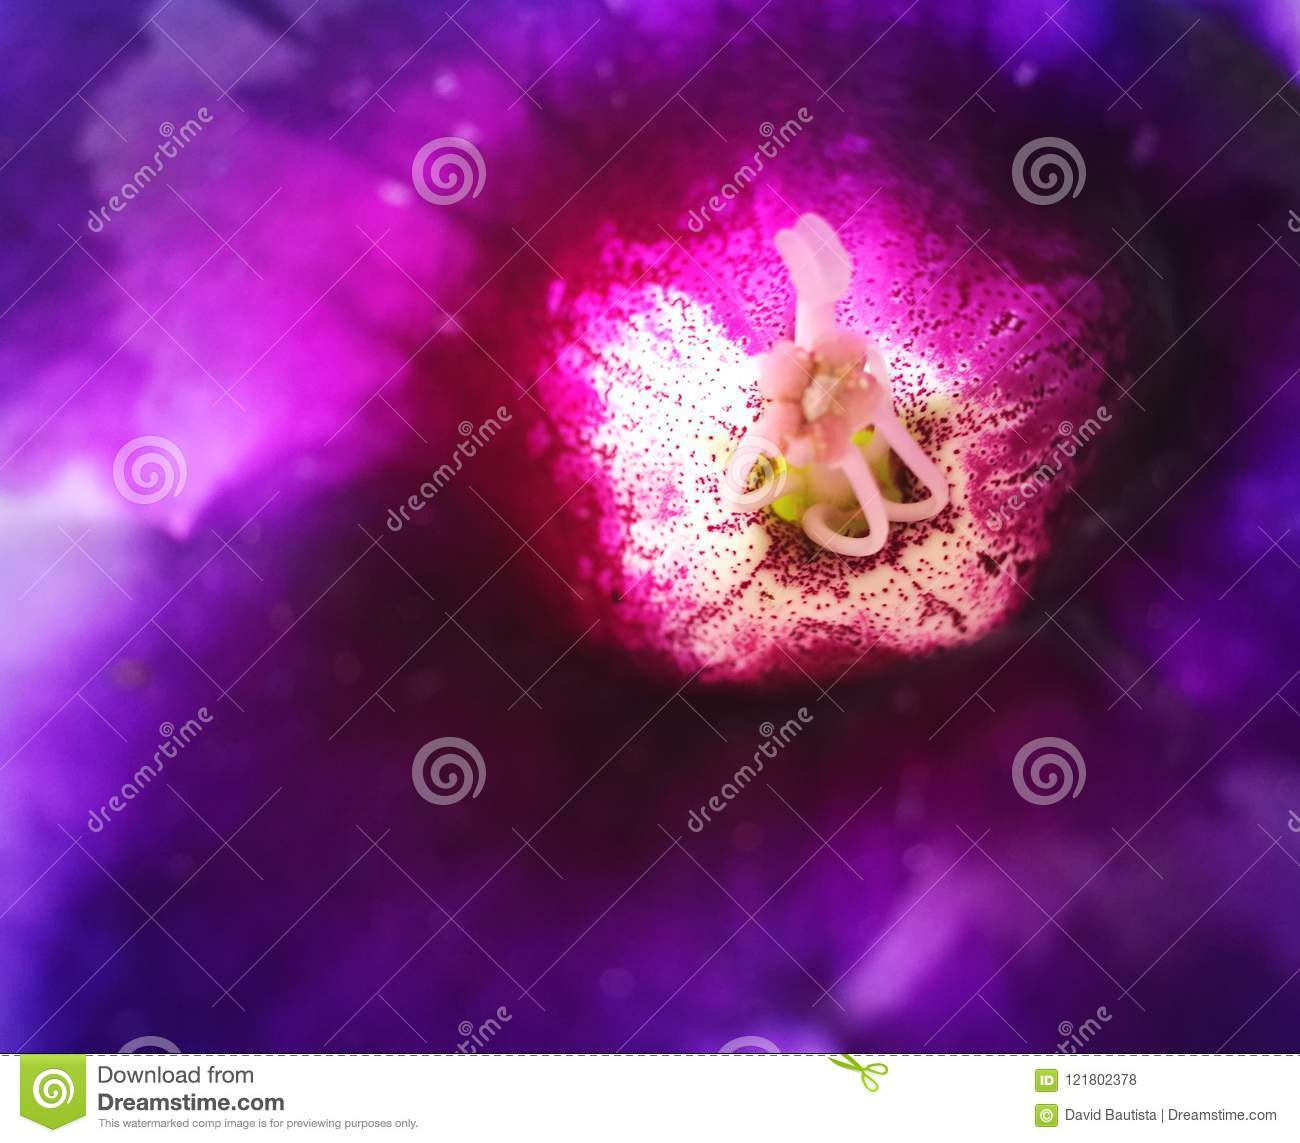 Inside View Of A Purple Flower With White Center And Spots Stock